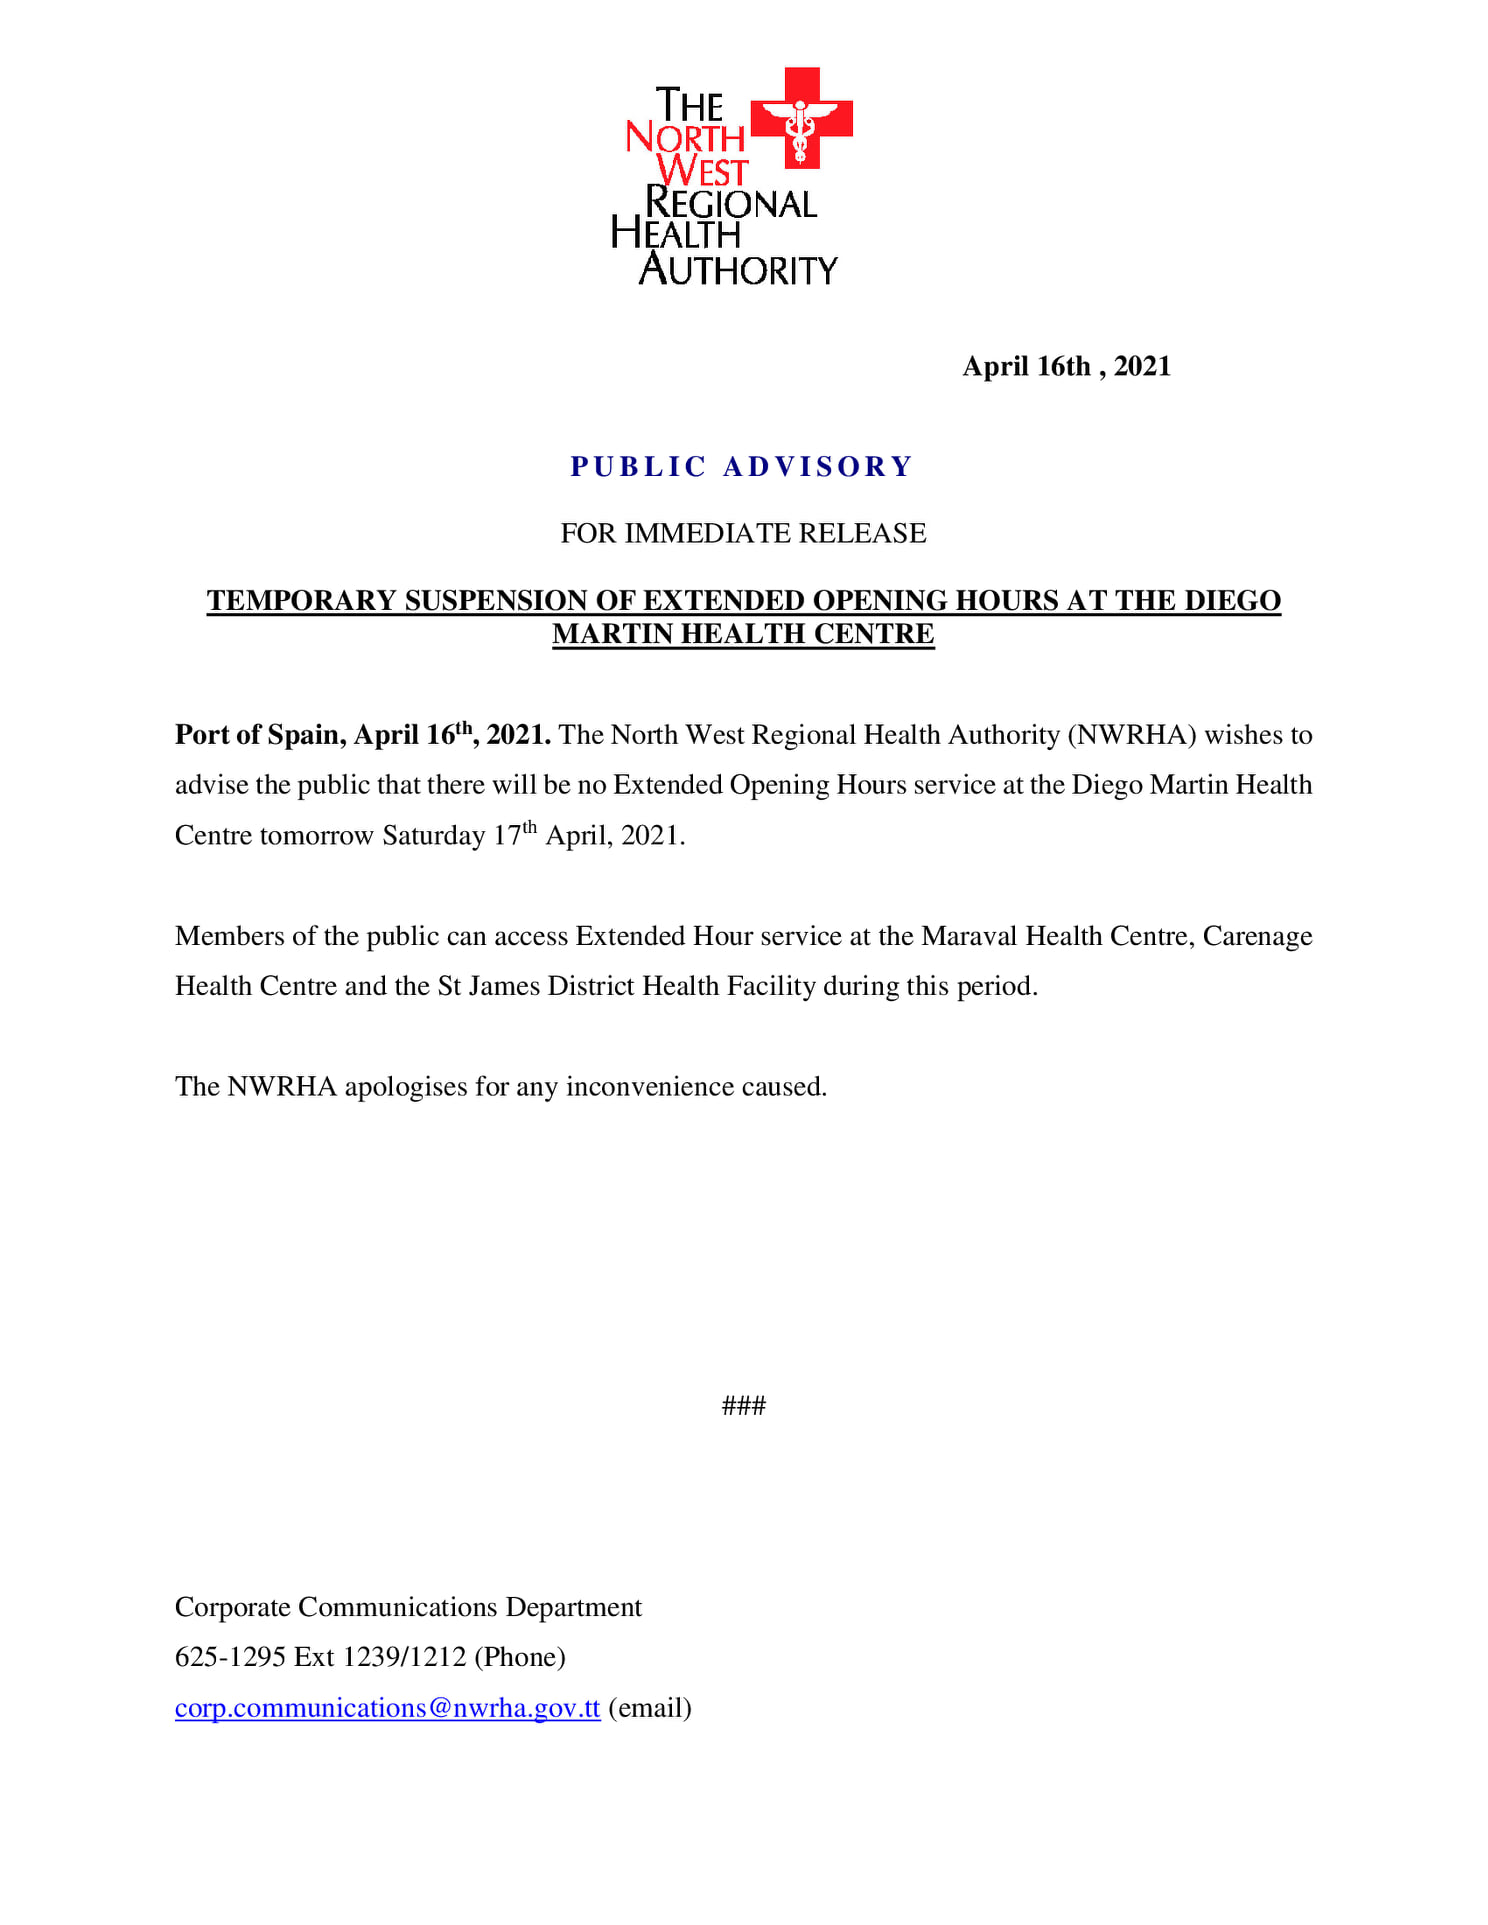 PUBLIC ADVISORY: TEMPRORARY SUSPENSION OF EXTEBDED OPENING HOURS AT THE DIEGO MARTIN HEALTH CENTRE